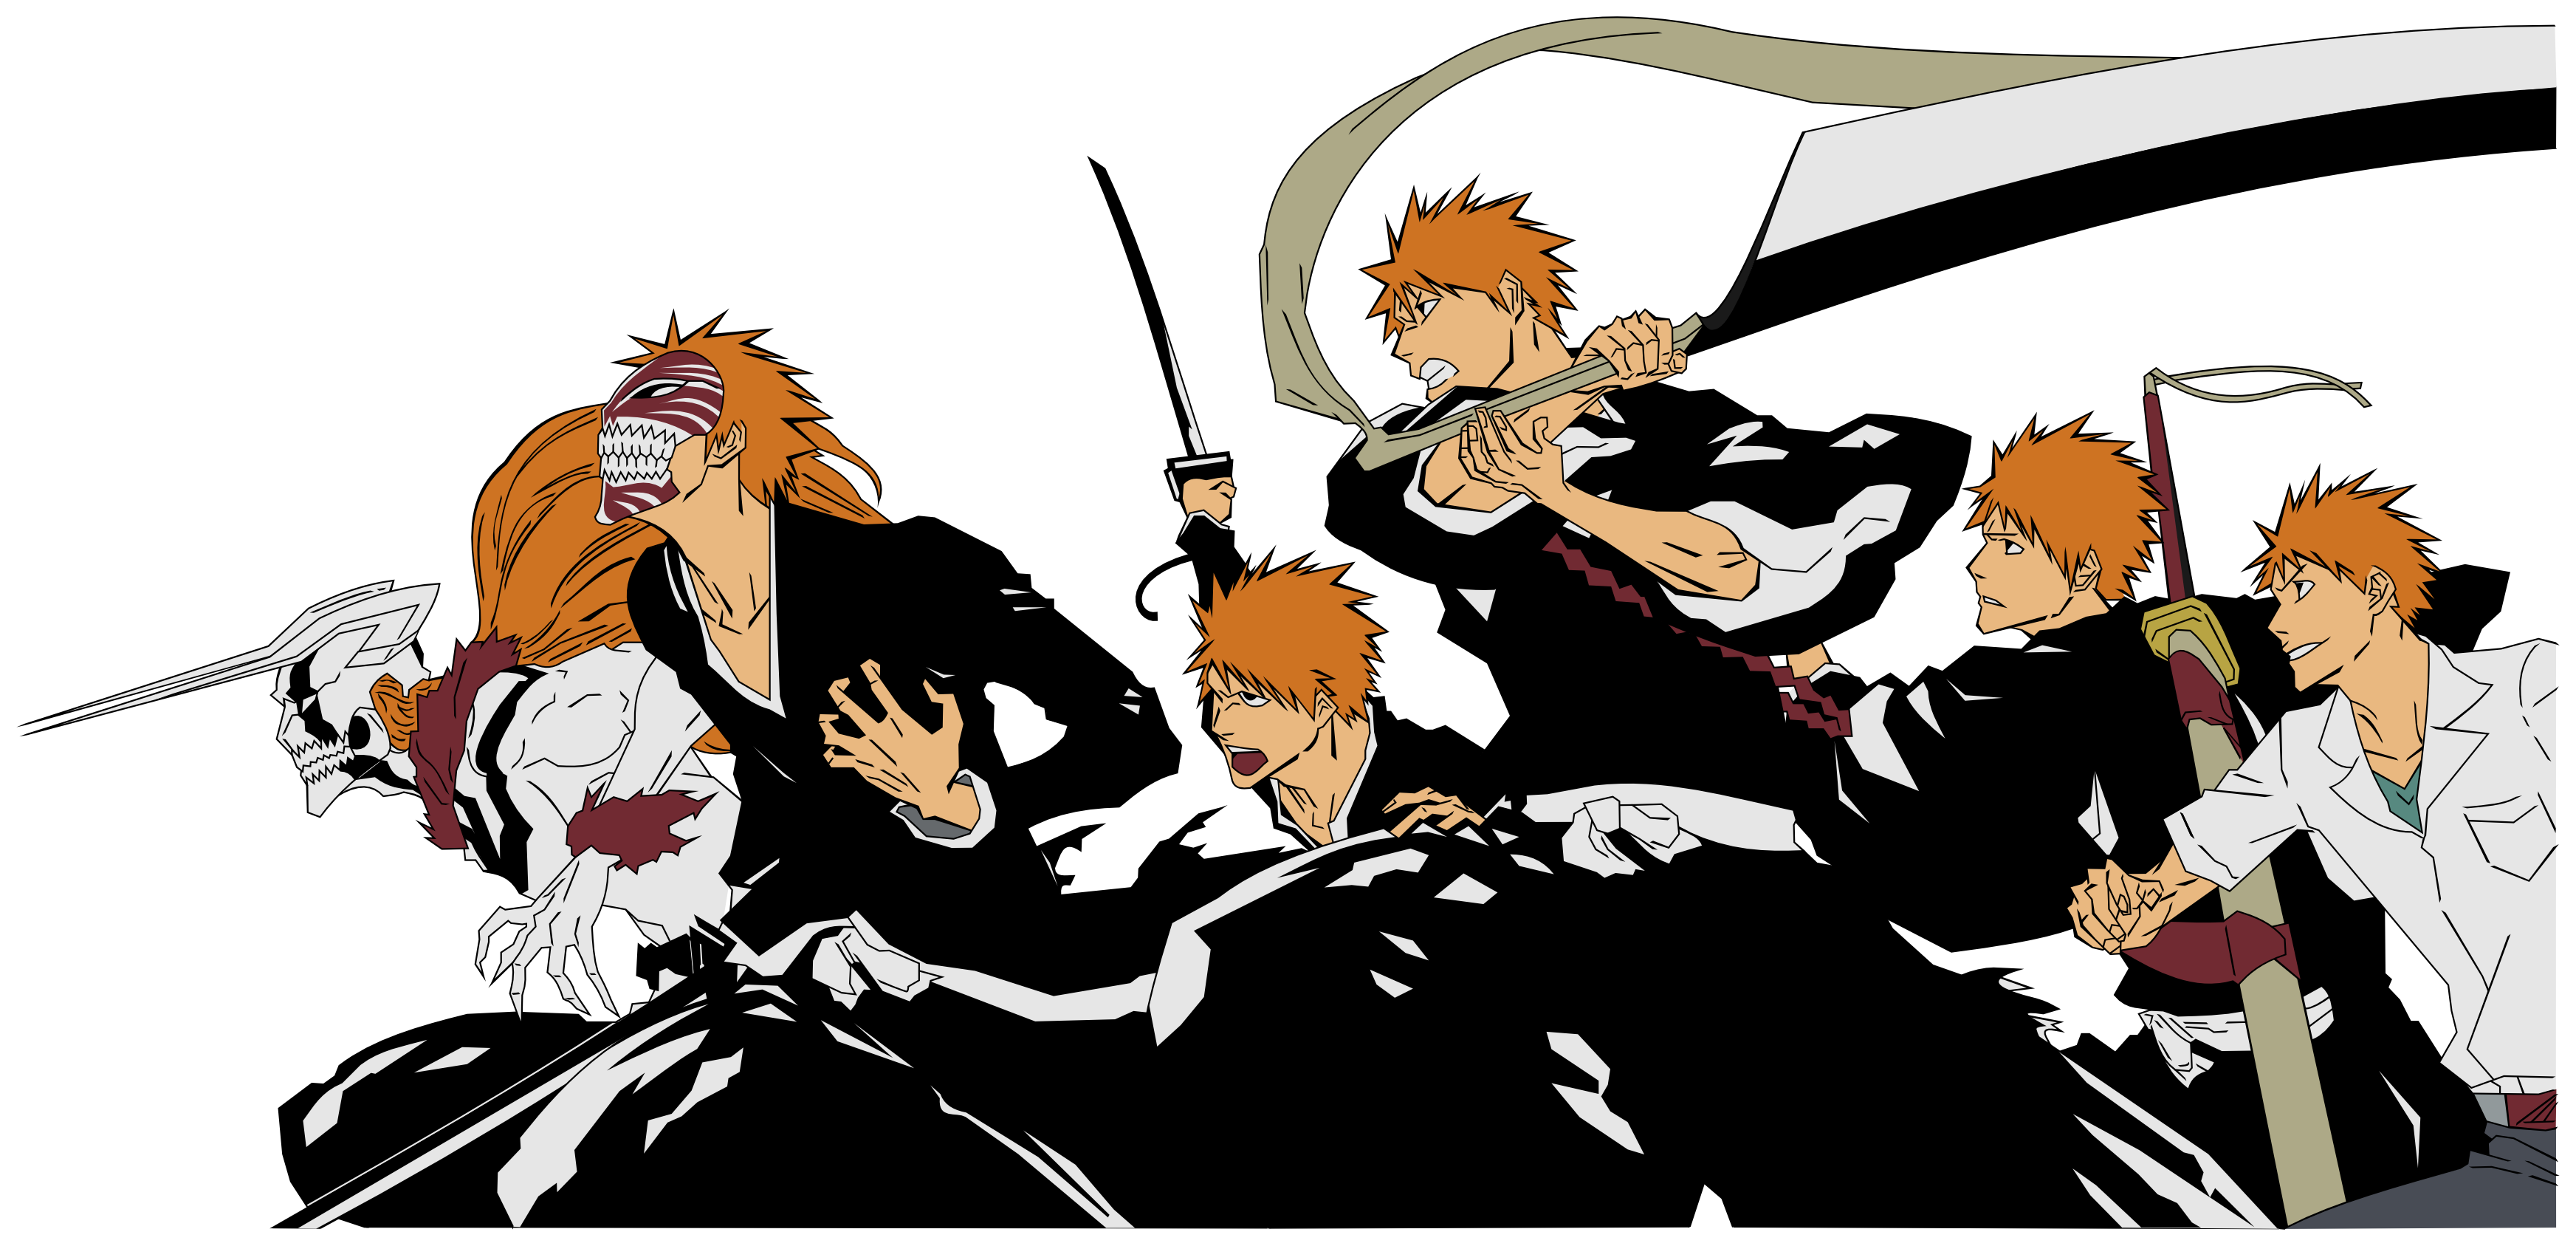 Bleach Evolution of Ichigo Блич, Синигами, Аниме